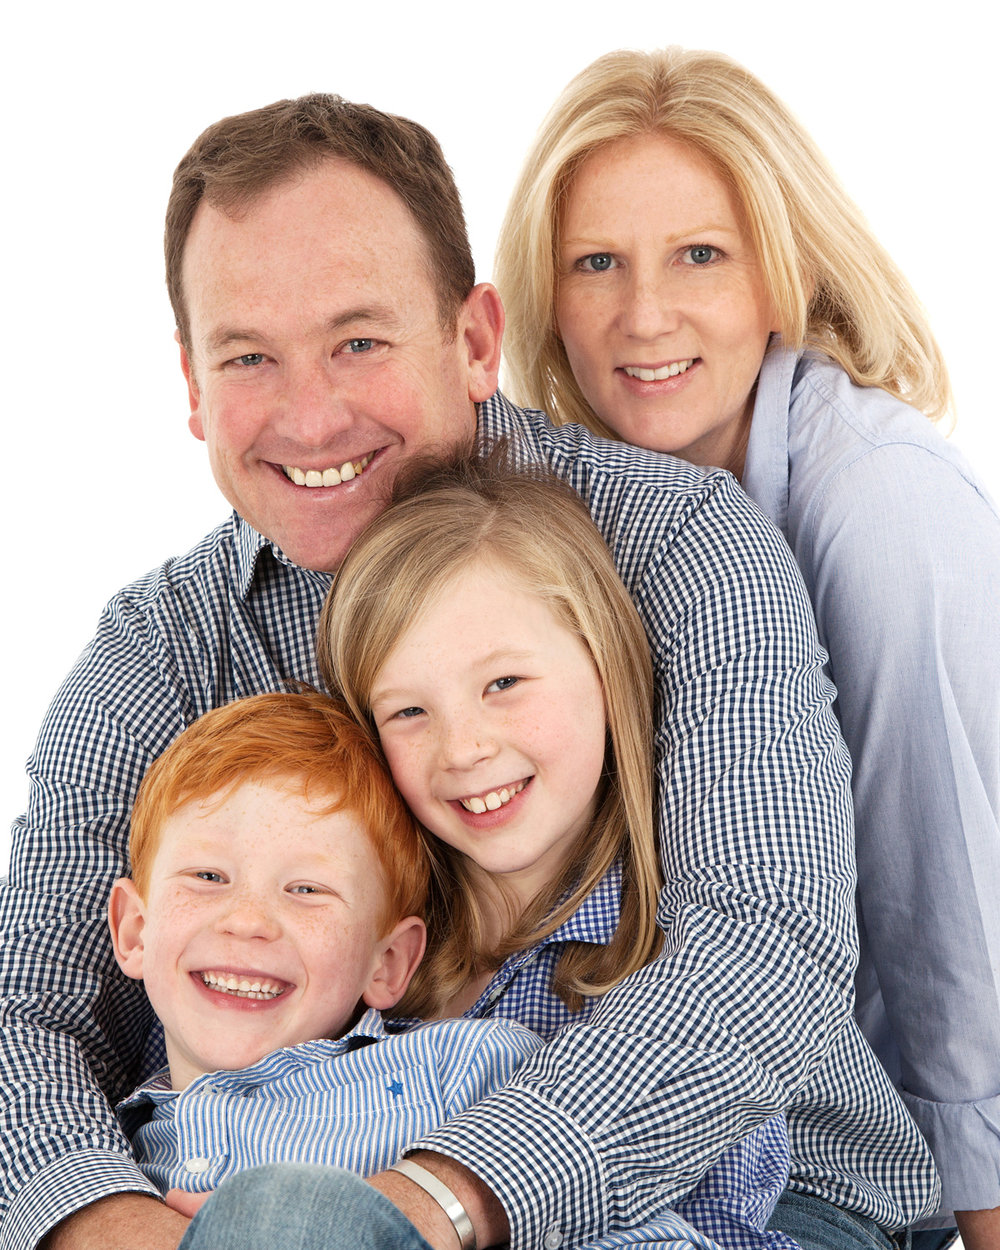 Family_Children_Portrait_Photographer_Newbury_Berkshire_022.jpg